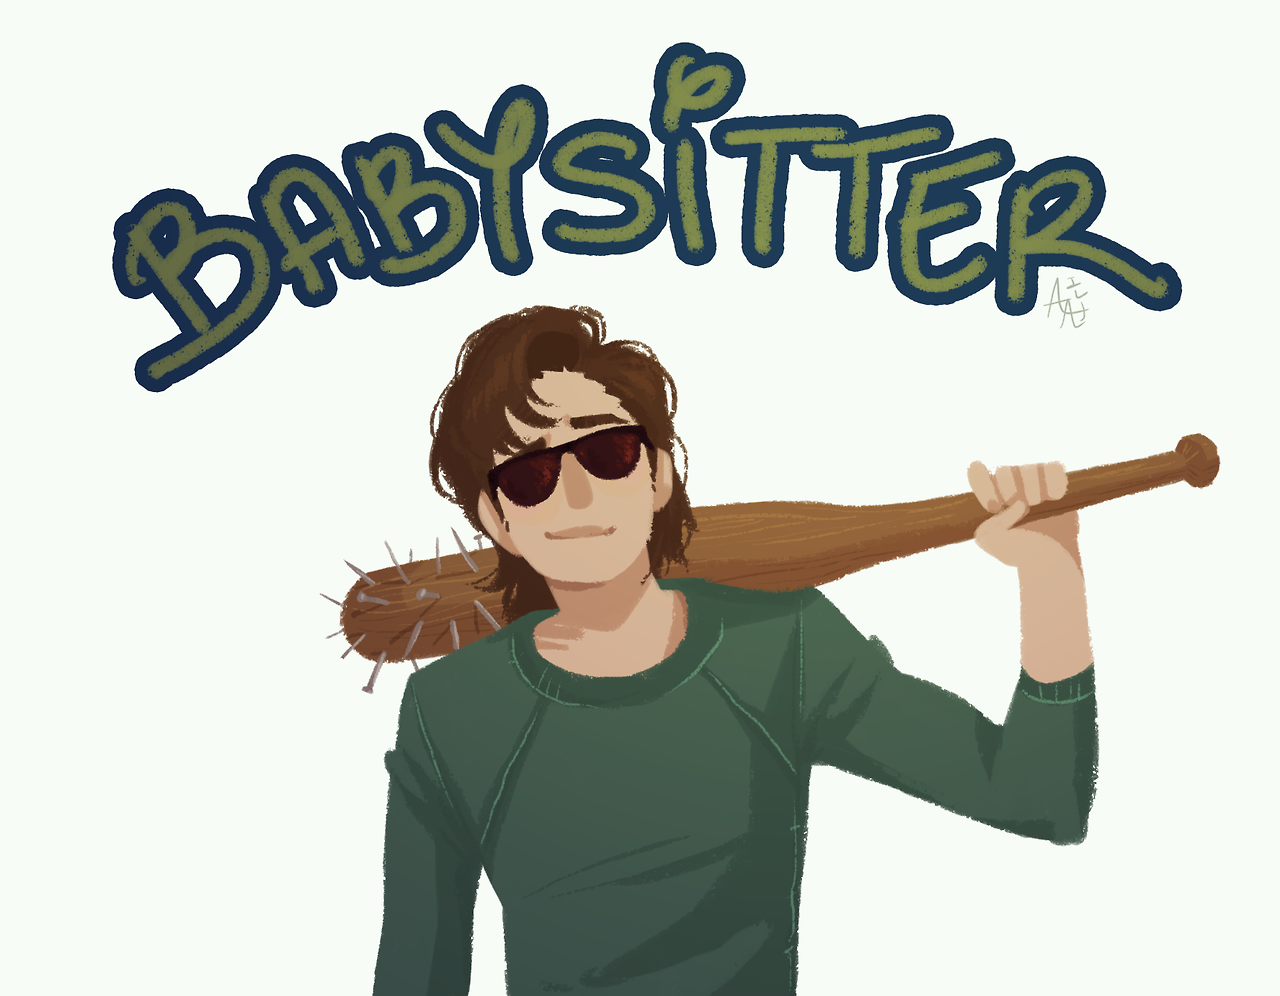 Steve Harrington Badass Babysitter Stranger Things 2 Joe keery who is most definitely asleep right now, one fan tweeted out, featuring a screenshot of one of the hacked tweets. pinterest